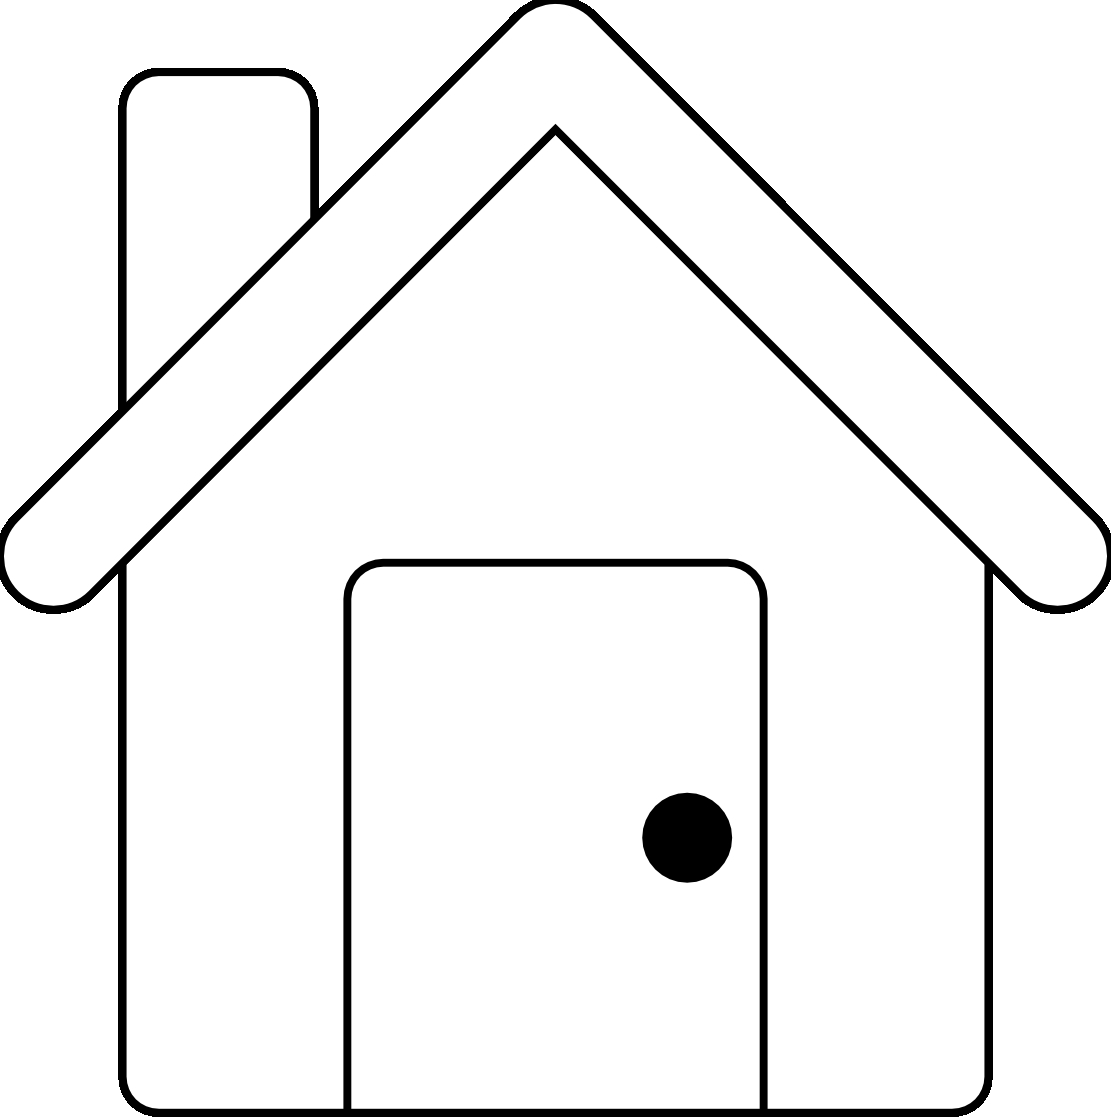 apartment clipart black and white free download best apartment